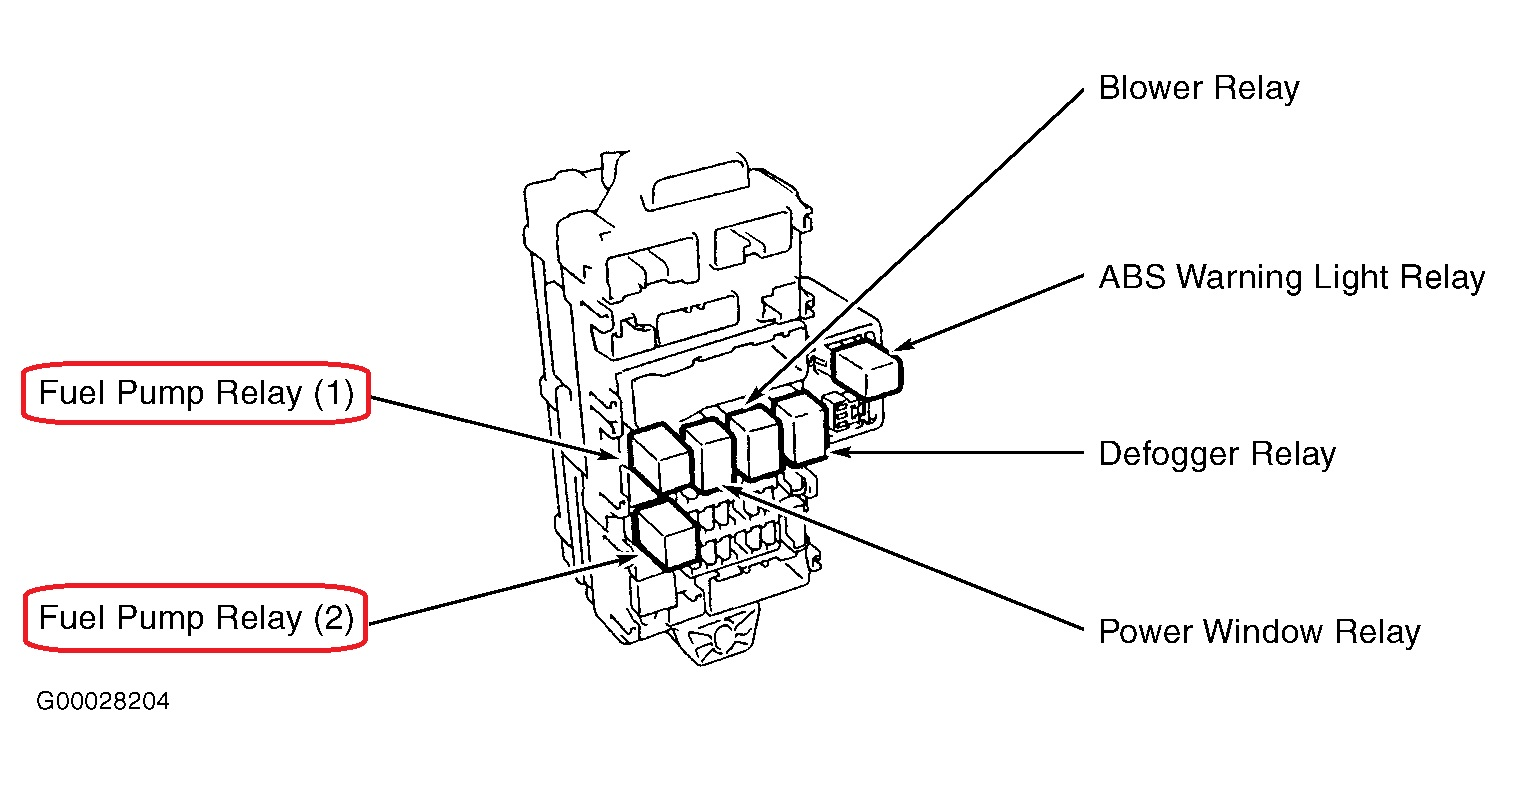 2004 Nissan Sentra Fuse Locations on nissan pathfinder wiring diagram